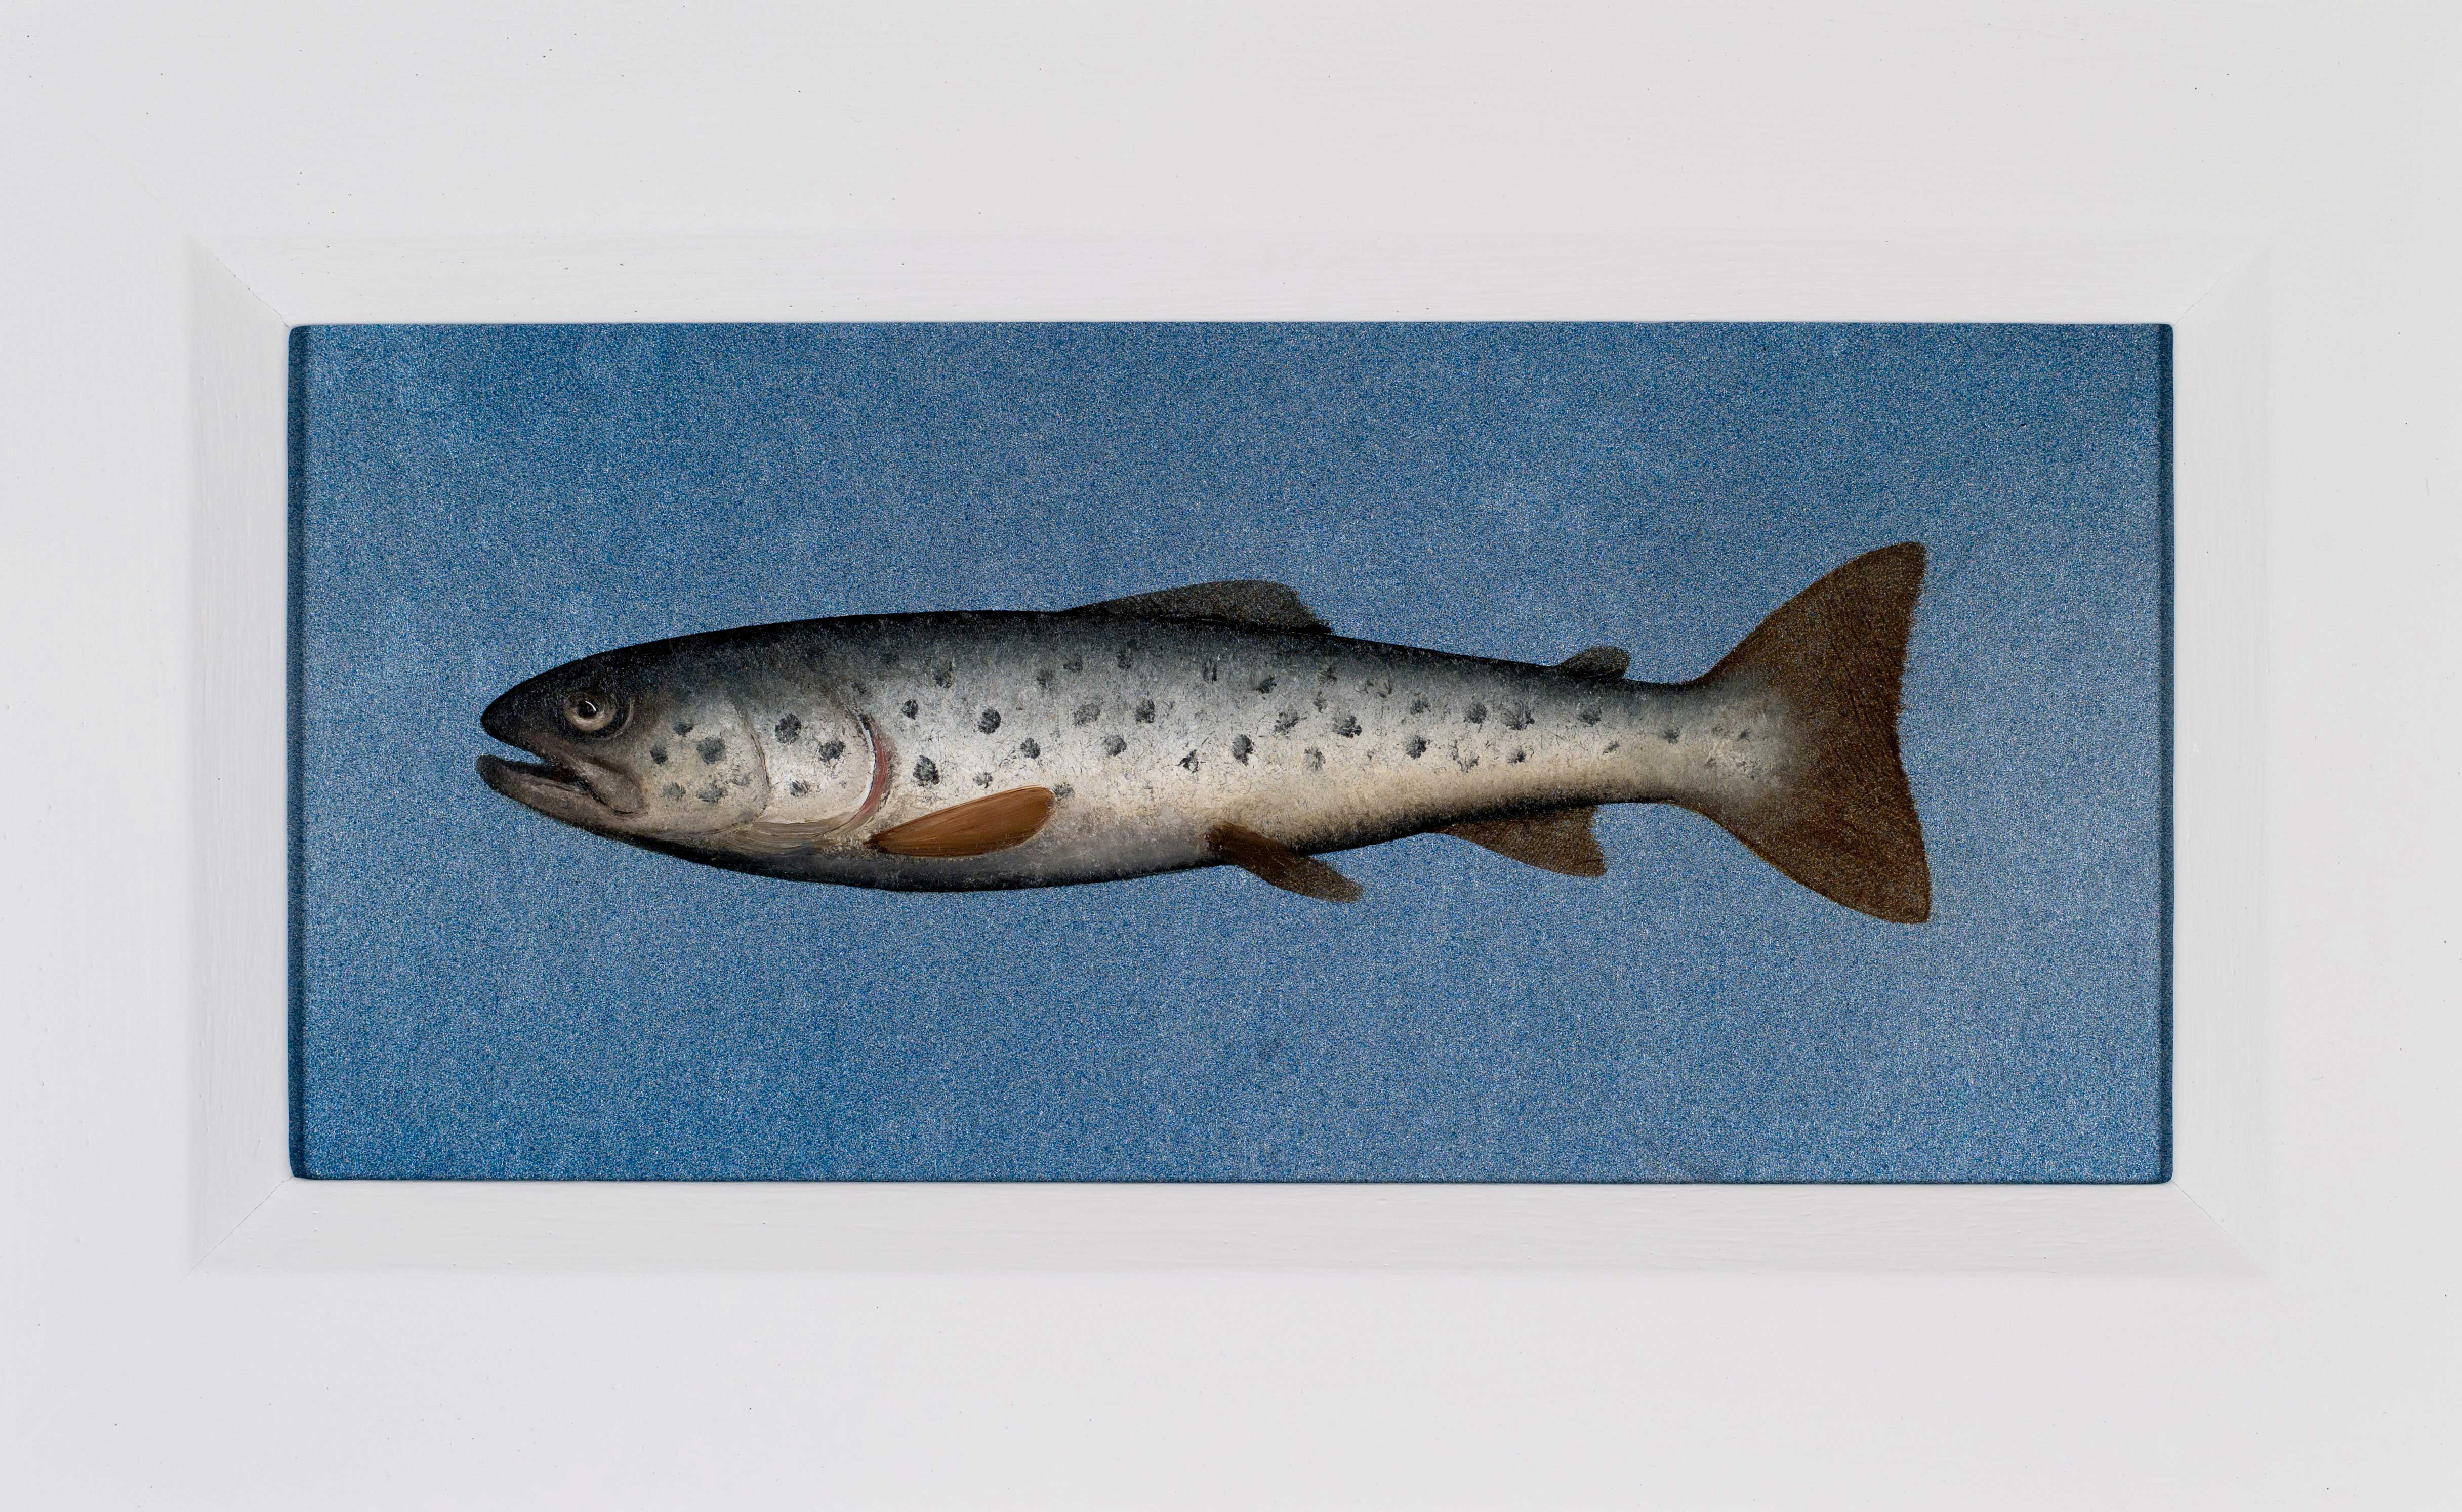 Donald Provan Wee Seatrout